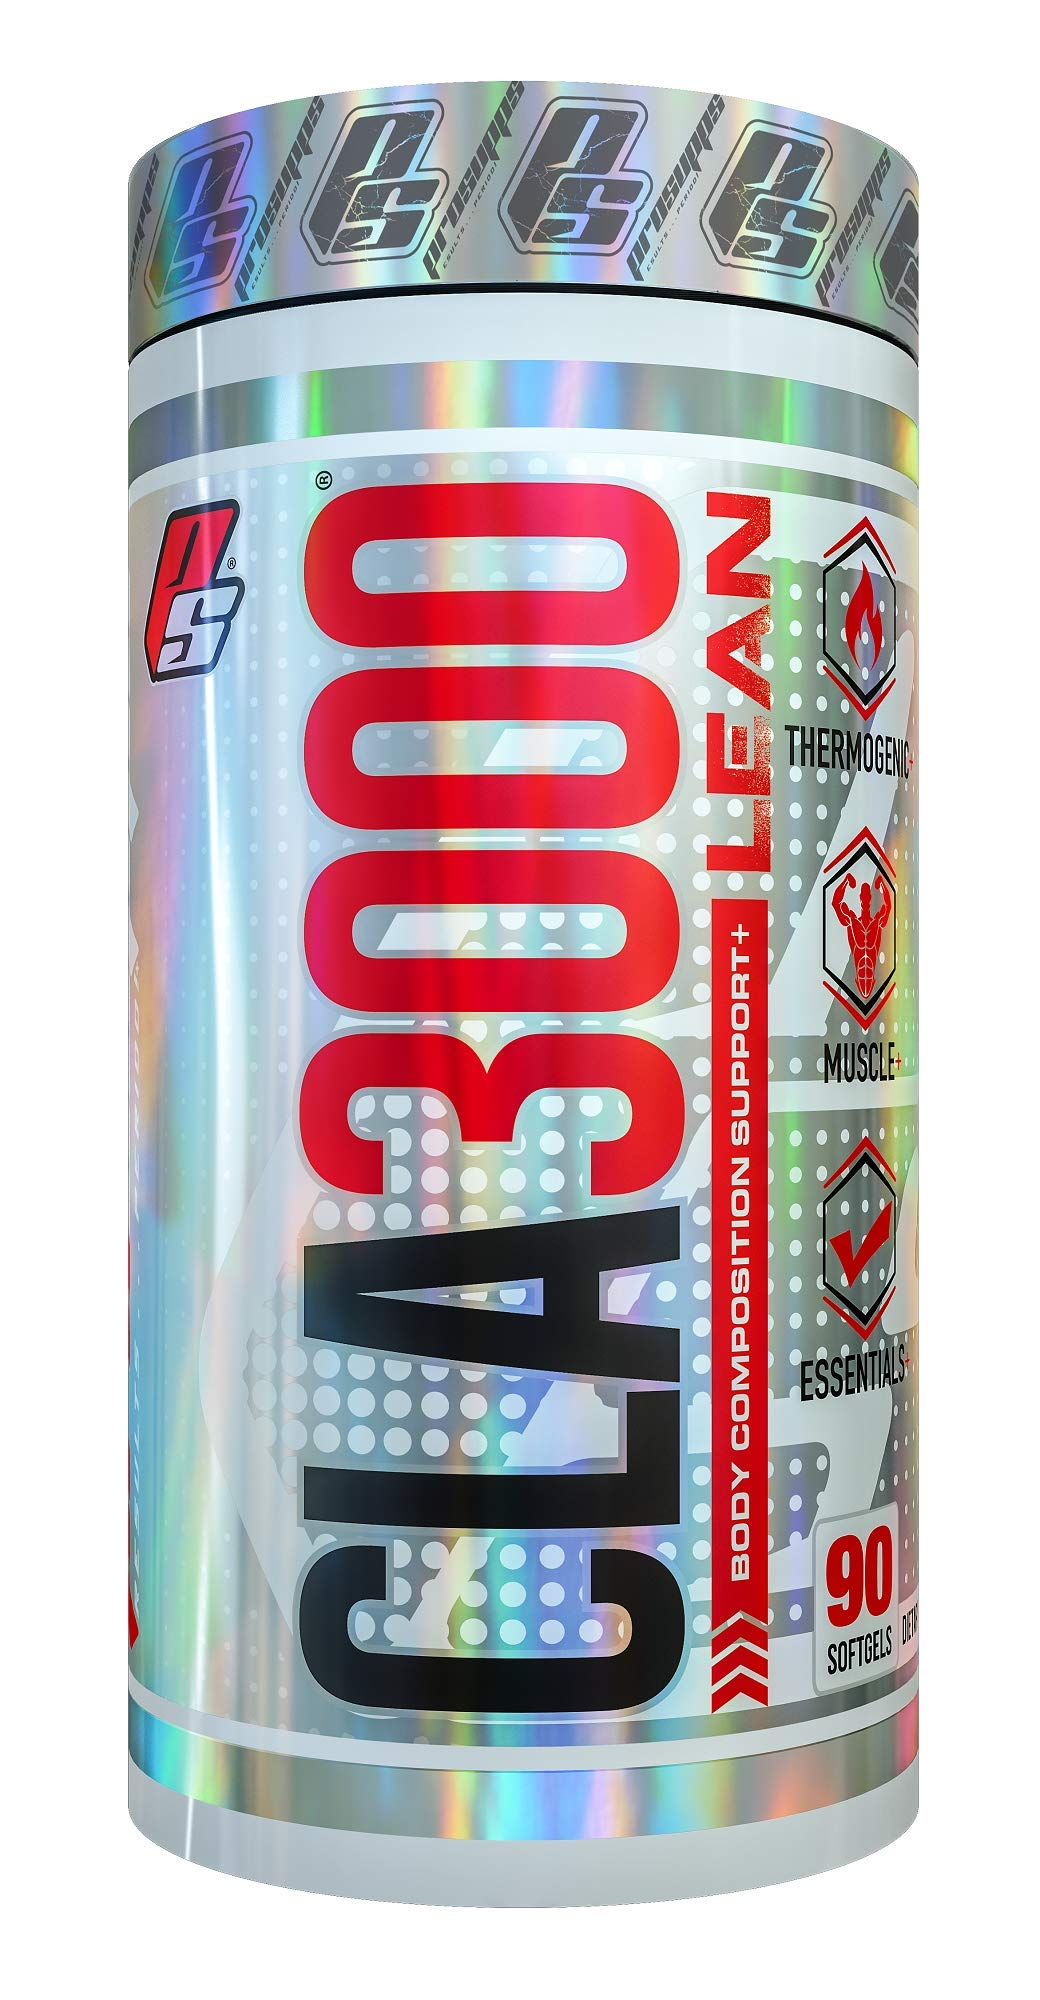 ProSupps CLA 3000 Lean Body Composition Support, 90 Softgels